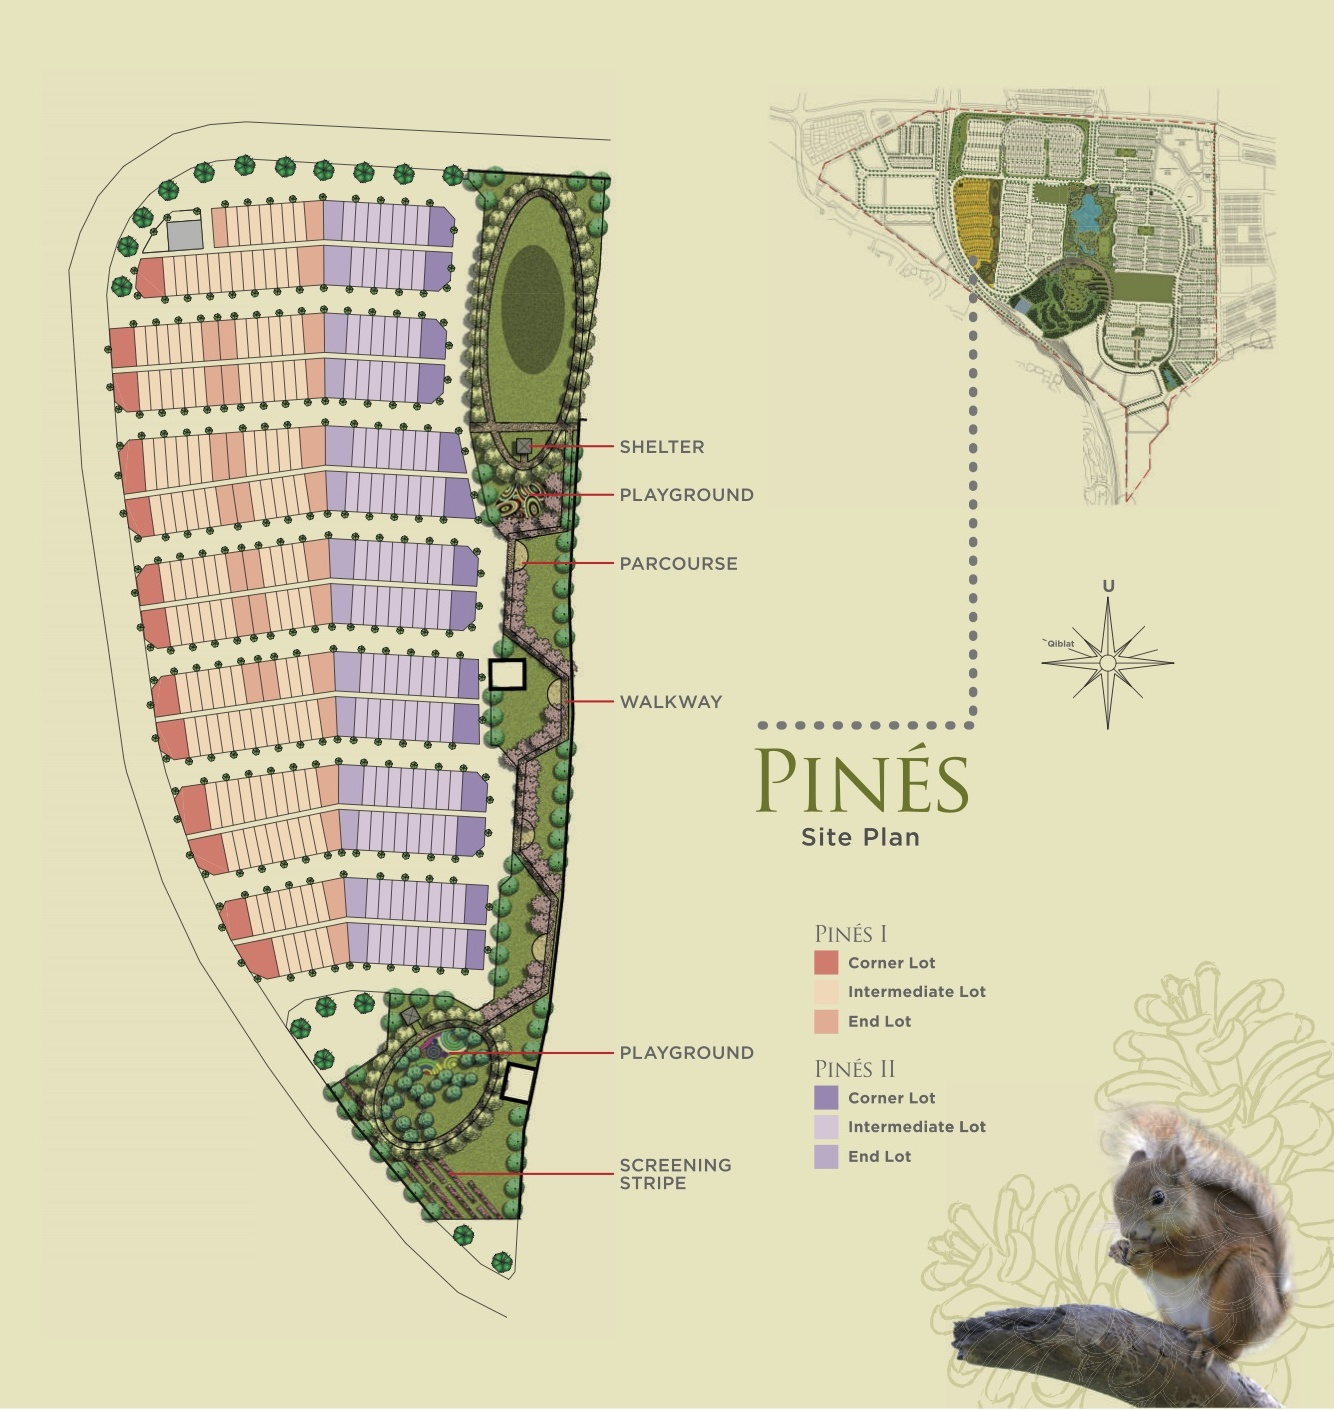 Site Plan of Pines